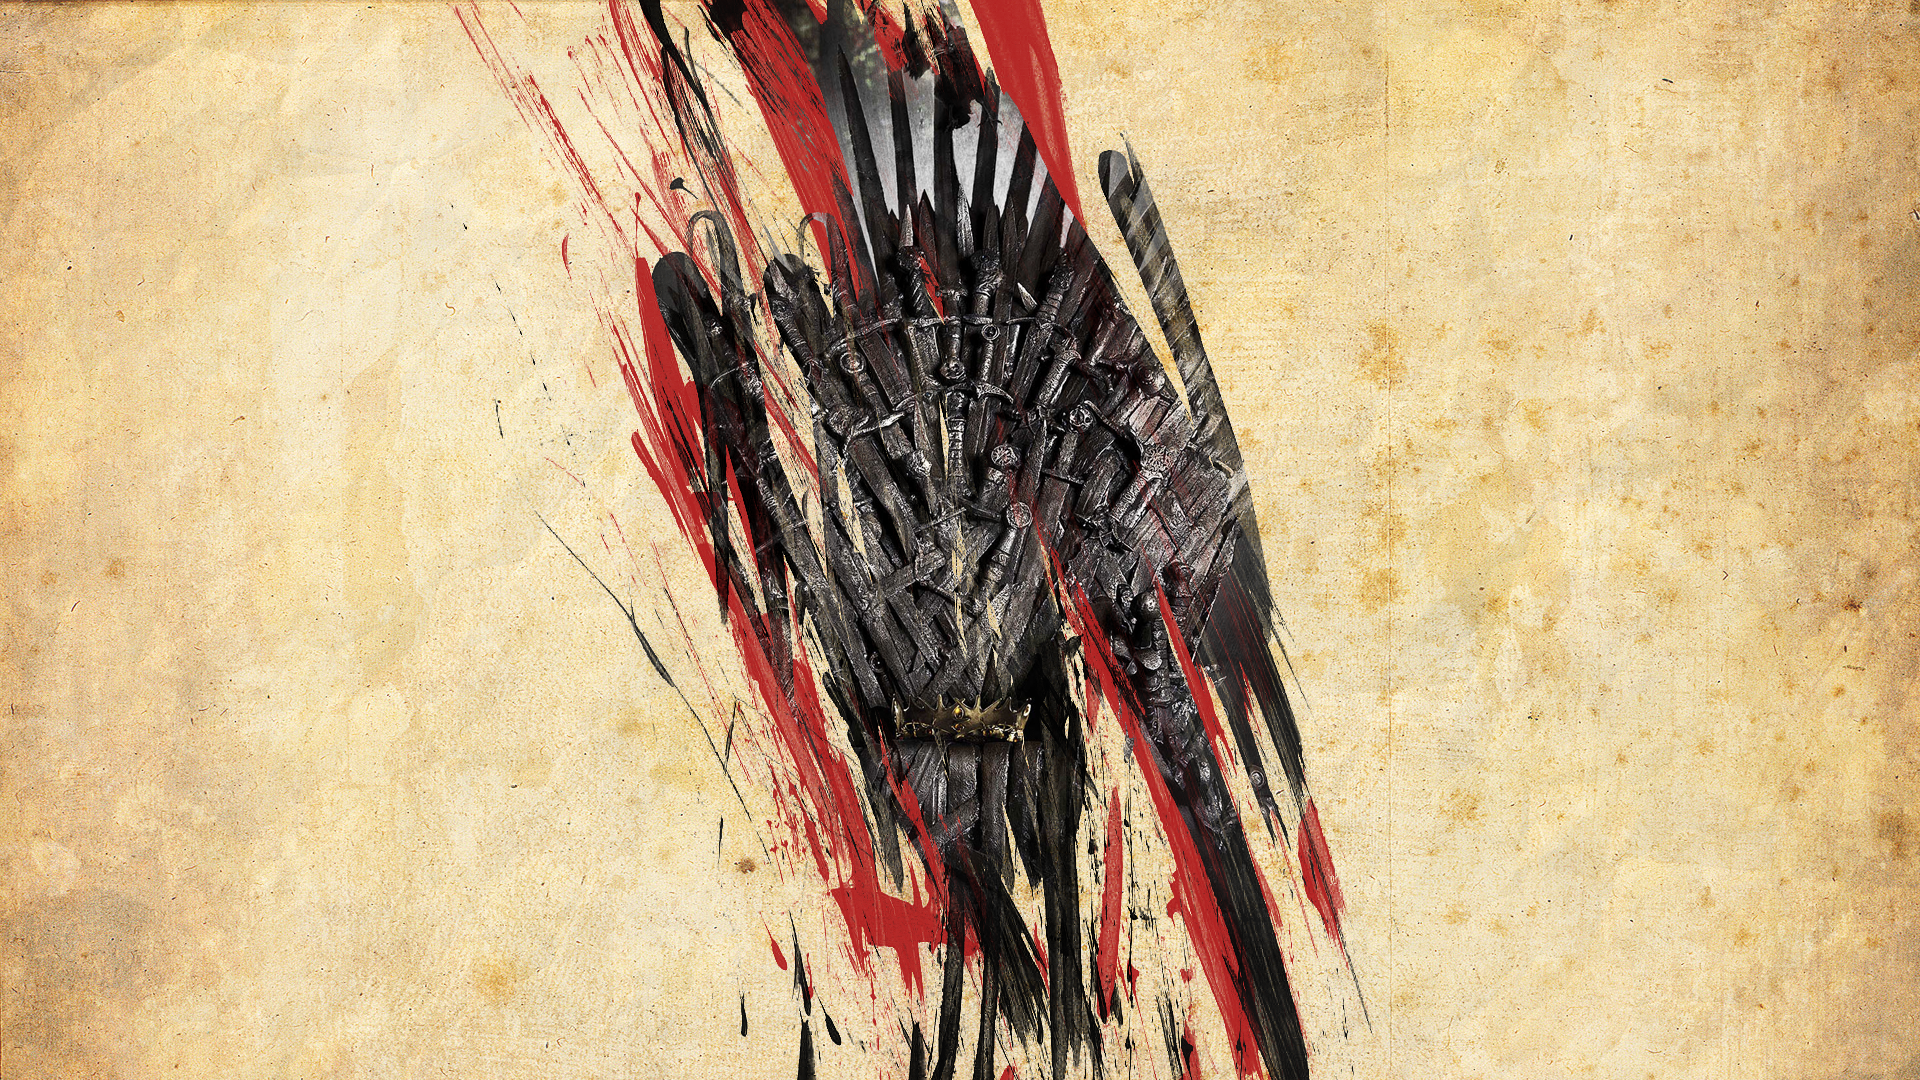 Game of Thrones Wallpaper   1920x1080 by Deadman619 1920x1080